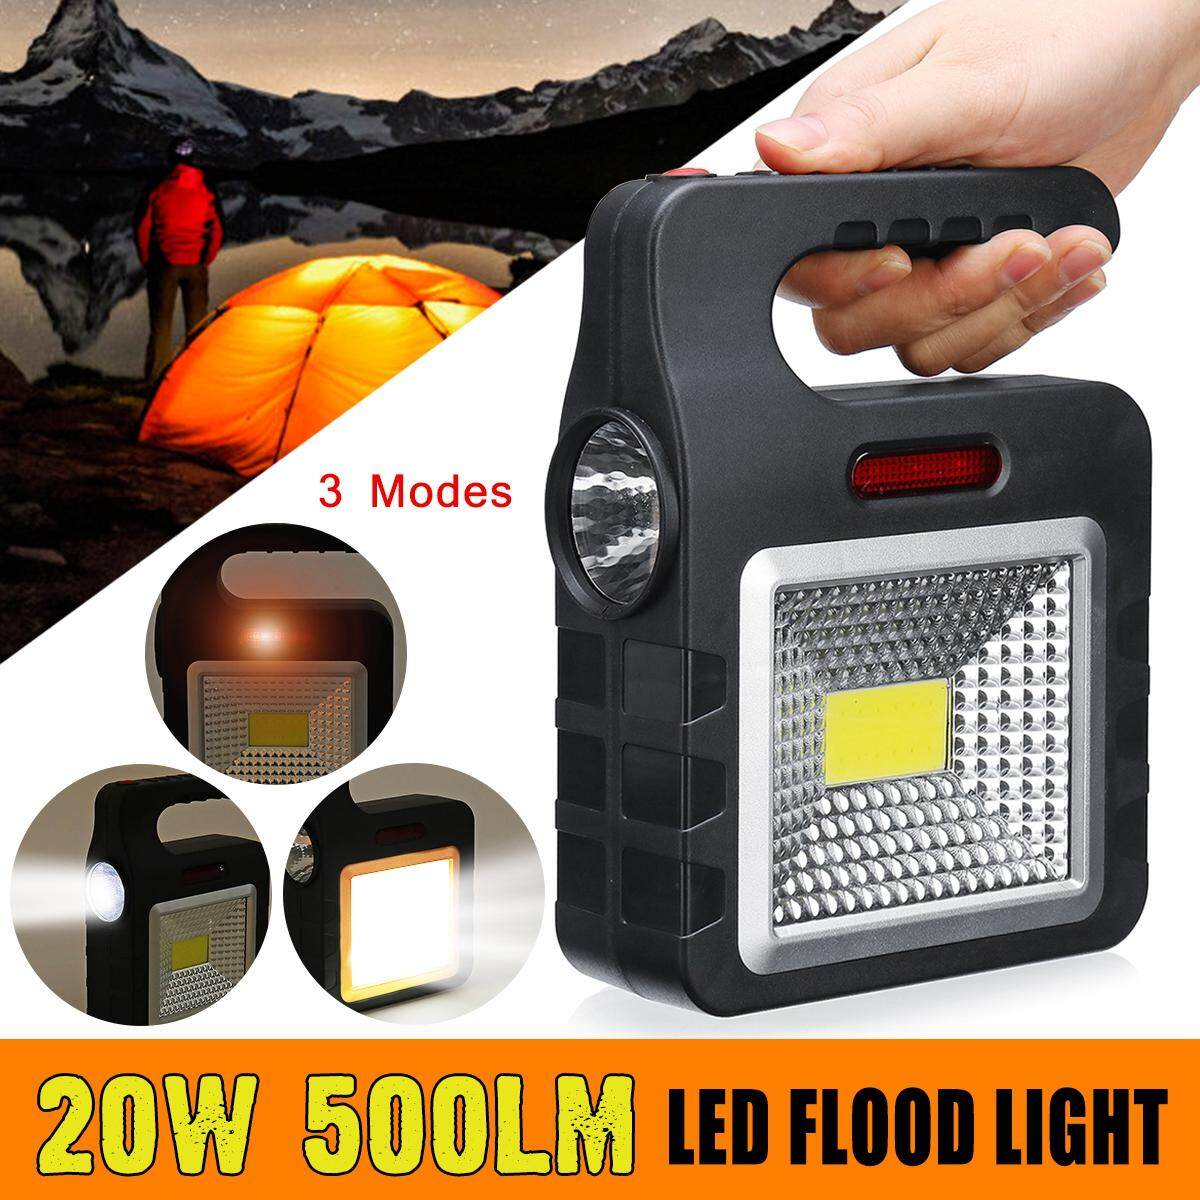 【Free Shipping + Flash Deal】Rechargeable Work Light Floodlight Portable Camping Spotlight LED Waterproof